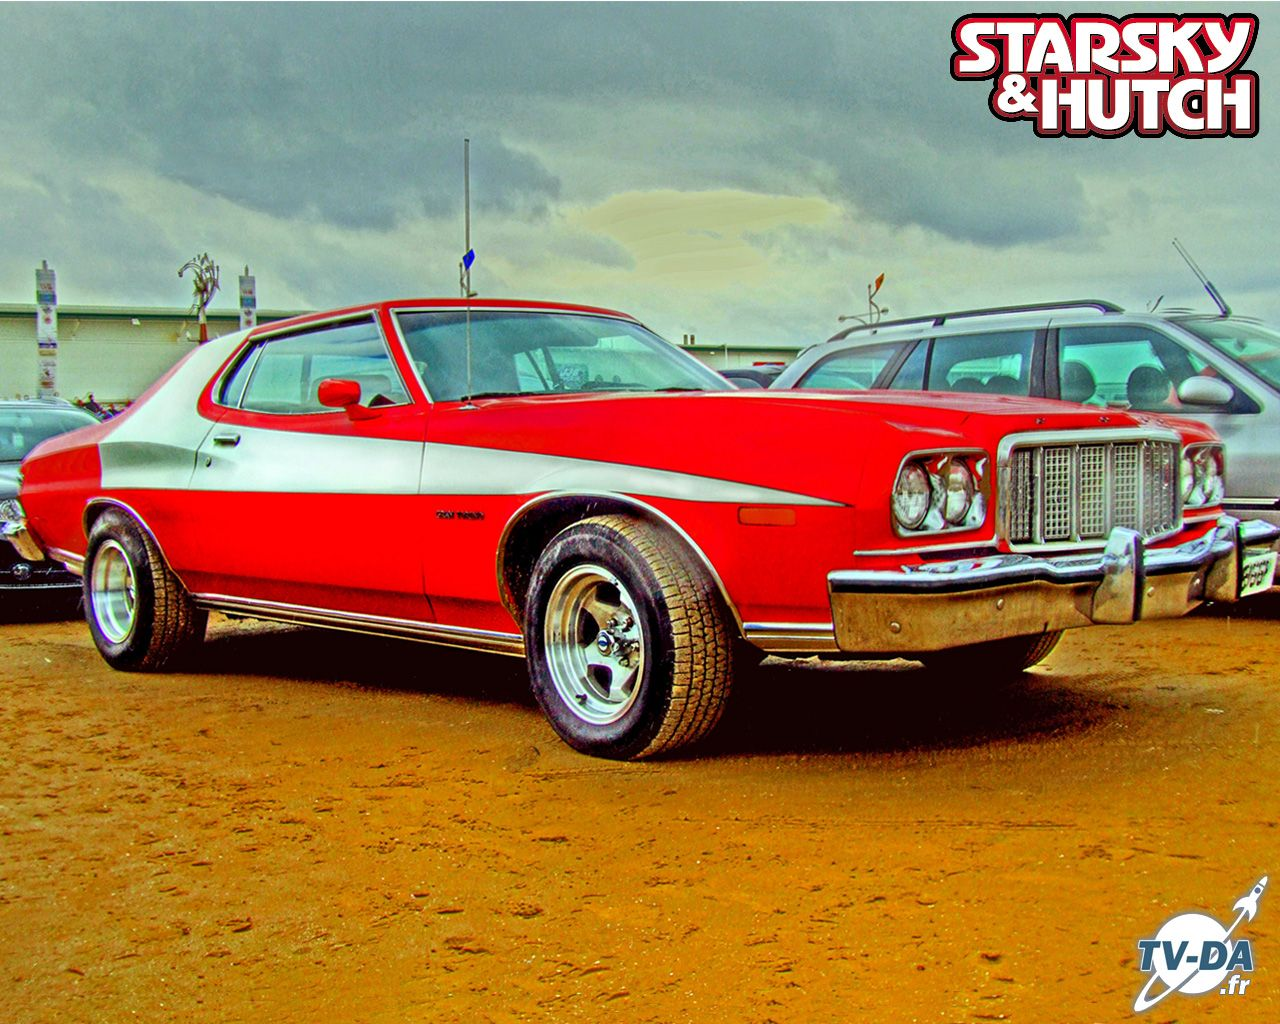 starsky and hutch gran torino starsky et hutch ford gran torino red hot famous vehicles. Black Bedroom Furniture Sets. Home Design Ideas